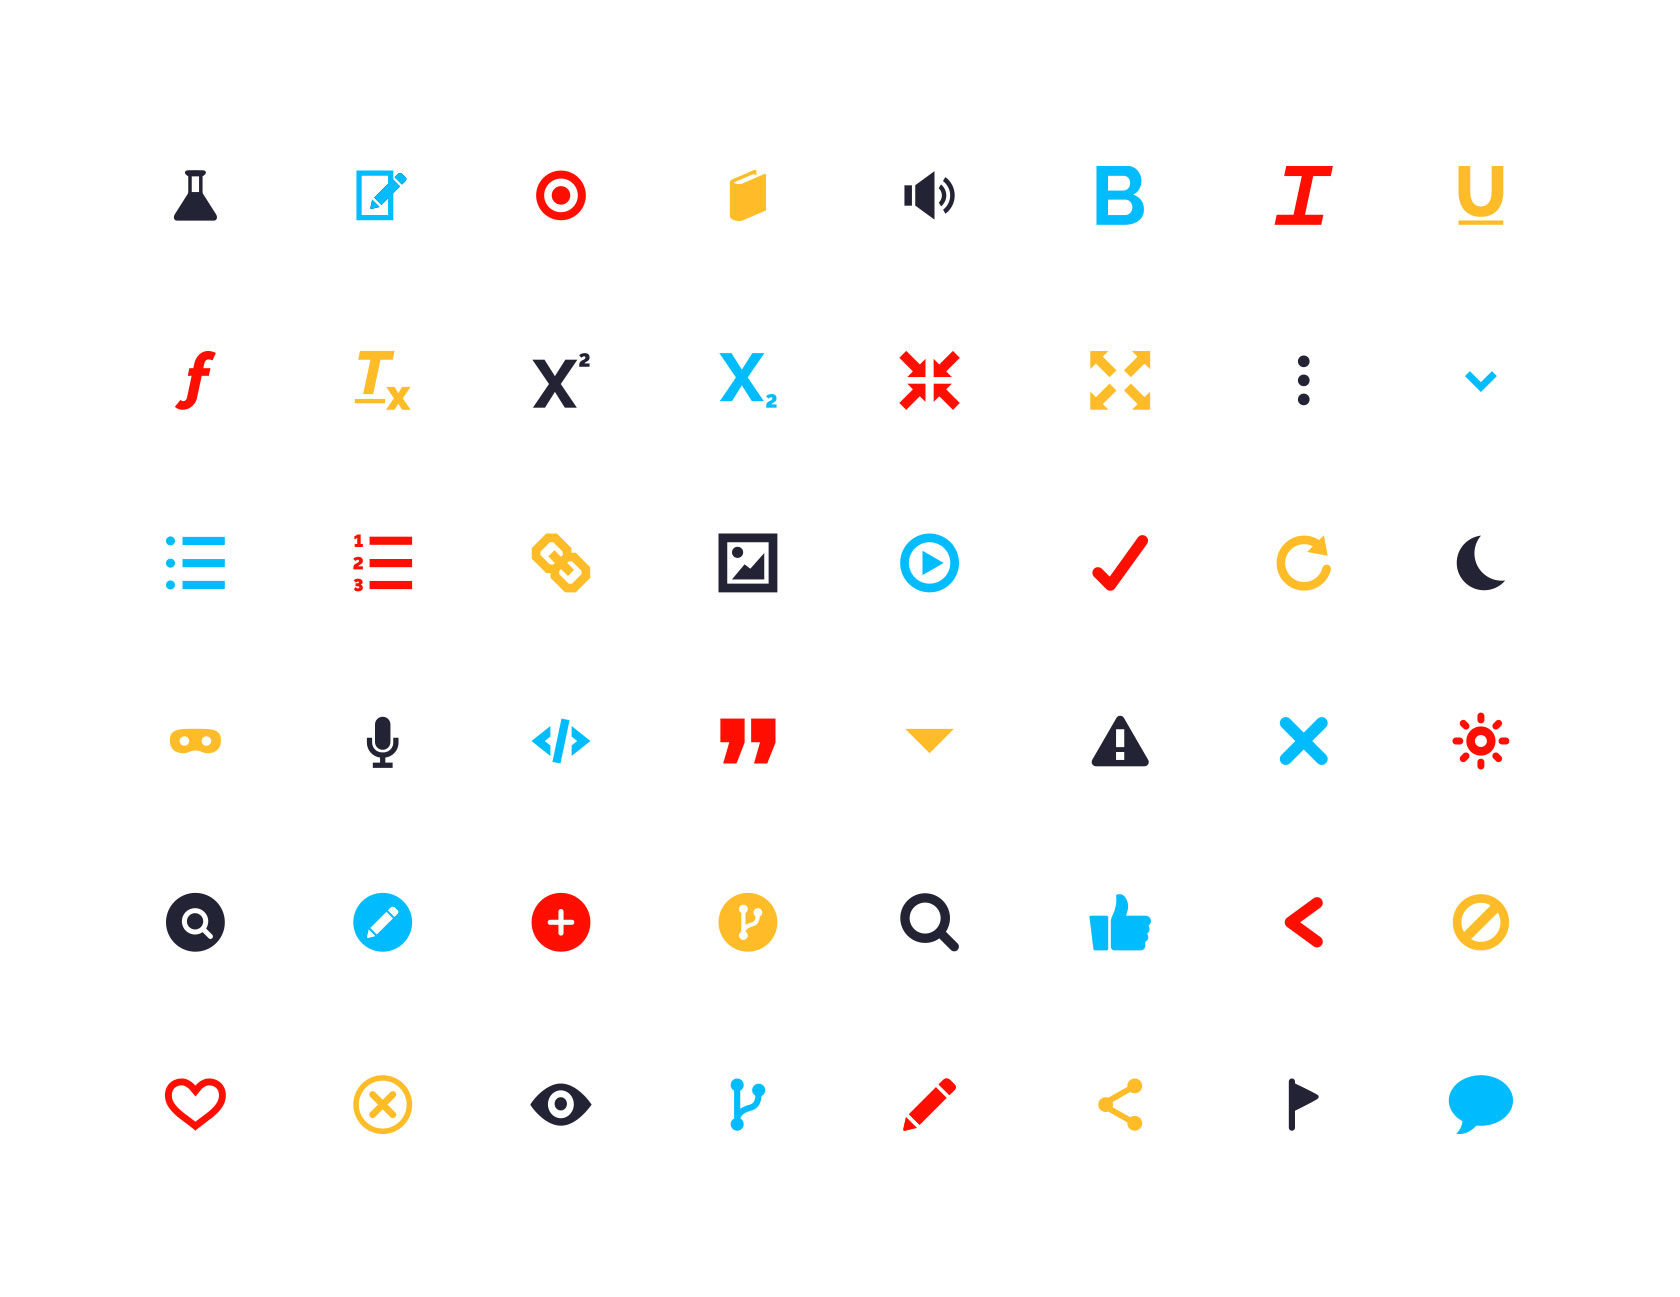 Team Study Website Icon Set Design by Furia